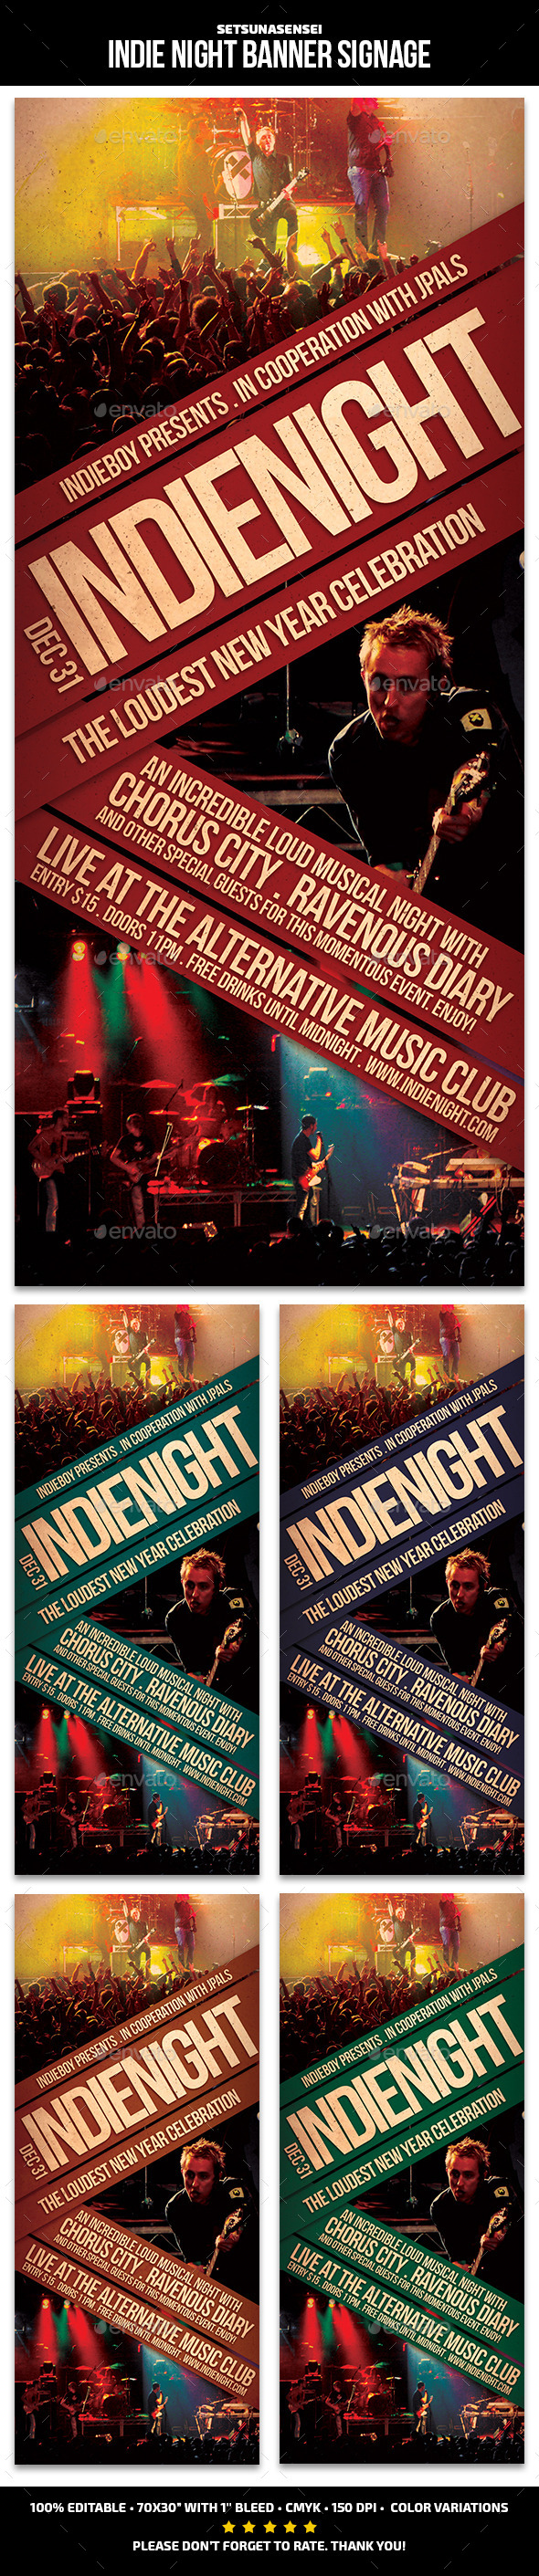 Indie Night Banner Signage - Signage Print Templates